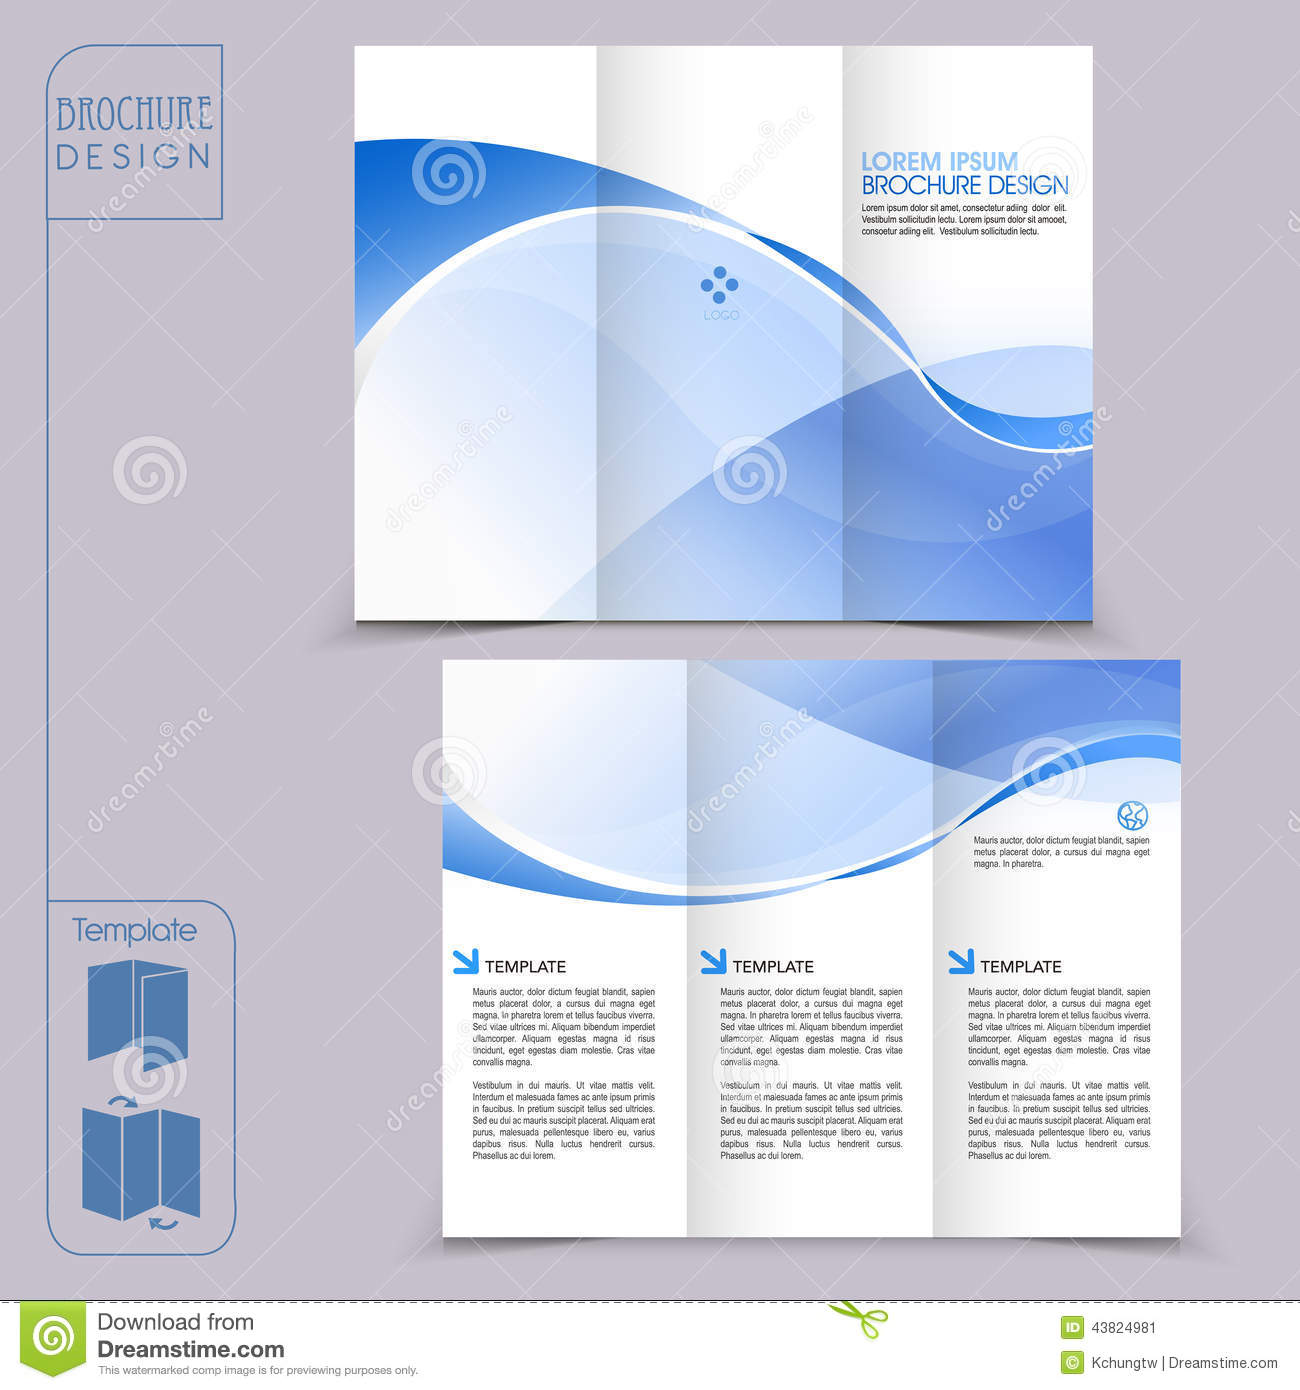 Tri fold blue template for business advertising brochure for Three fold brochure template free download